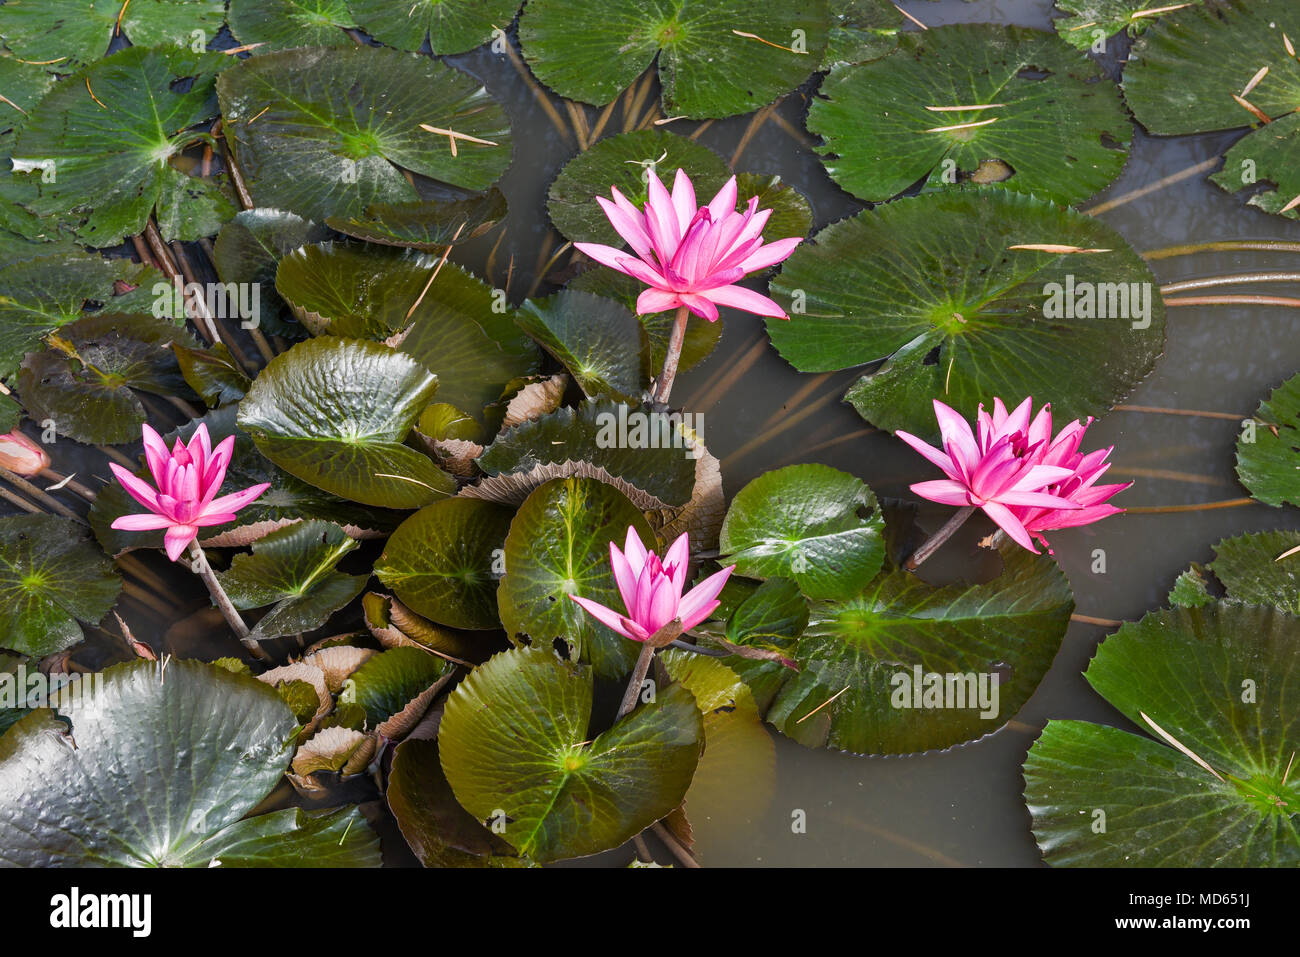 Pink Waterlily Or Lotus Flower In Natural Water Pool Stock Photo